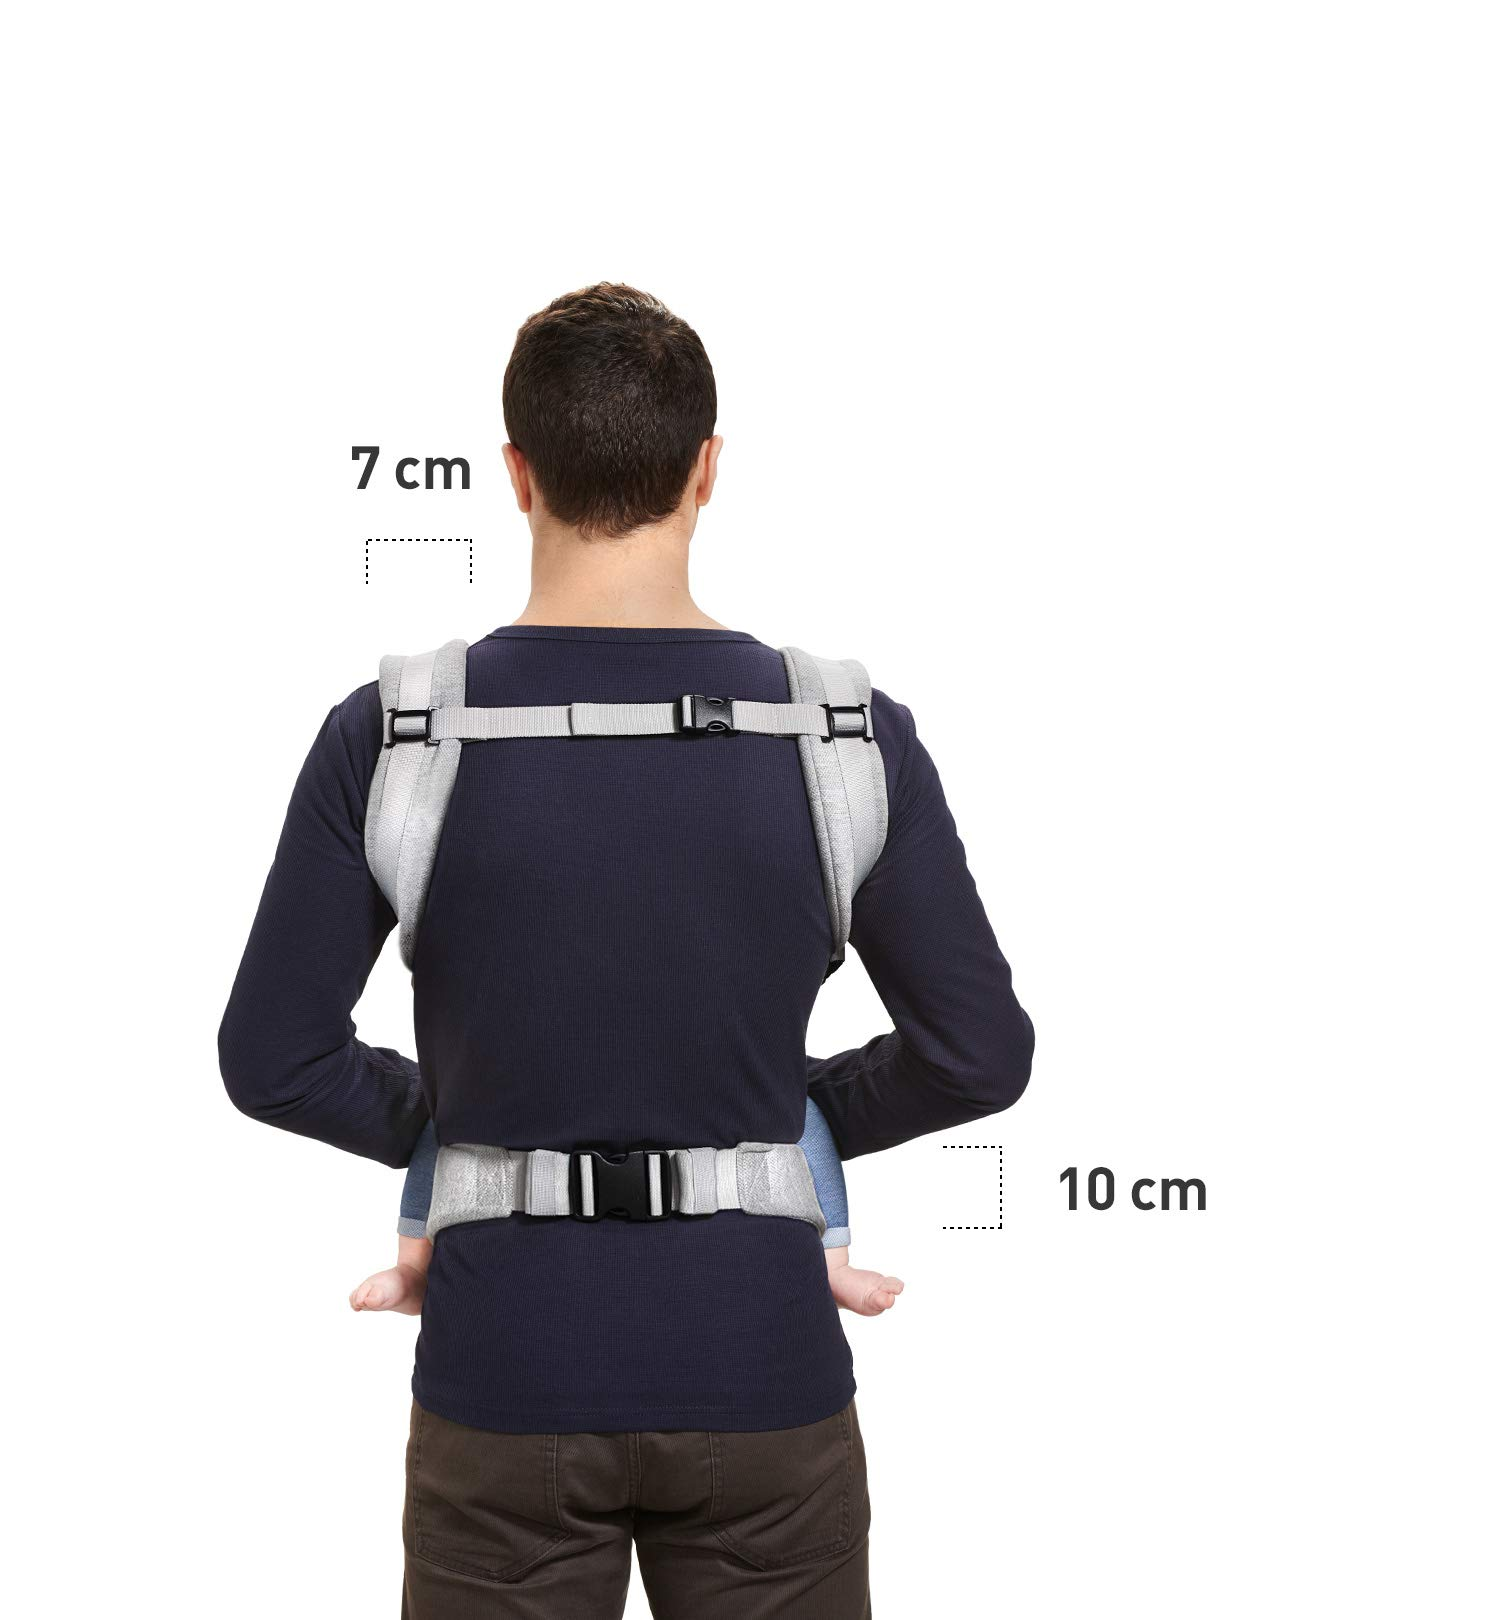 kk Kinderkraft Milo Ergonomic Baby Carrier Front Gray kk KinderKraft Ergonomic baby carrier for children aged from 3 months up to 20 kg Two baby carrying positions: on the stomach and on the back Rubber bands so that the belt ends do not hang 10